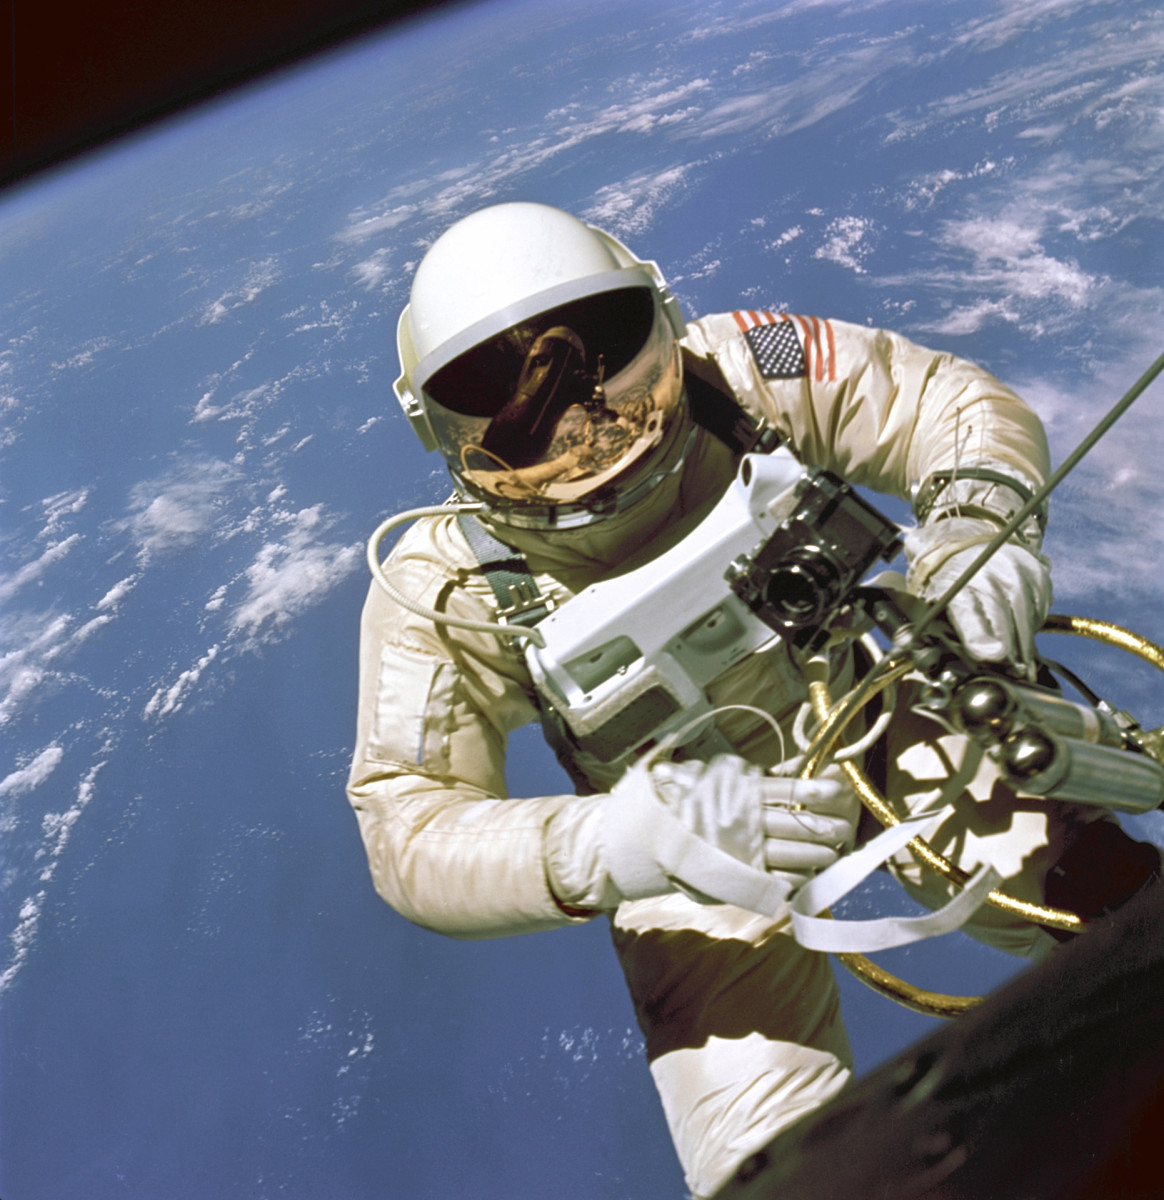 On June 3, 1965 Edward H. White II became the first American to step outside his spacecraft and let go, setting himself adrift in the zero gravity of space.